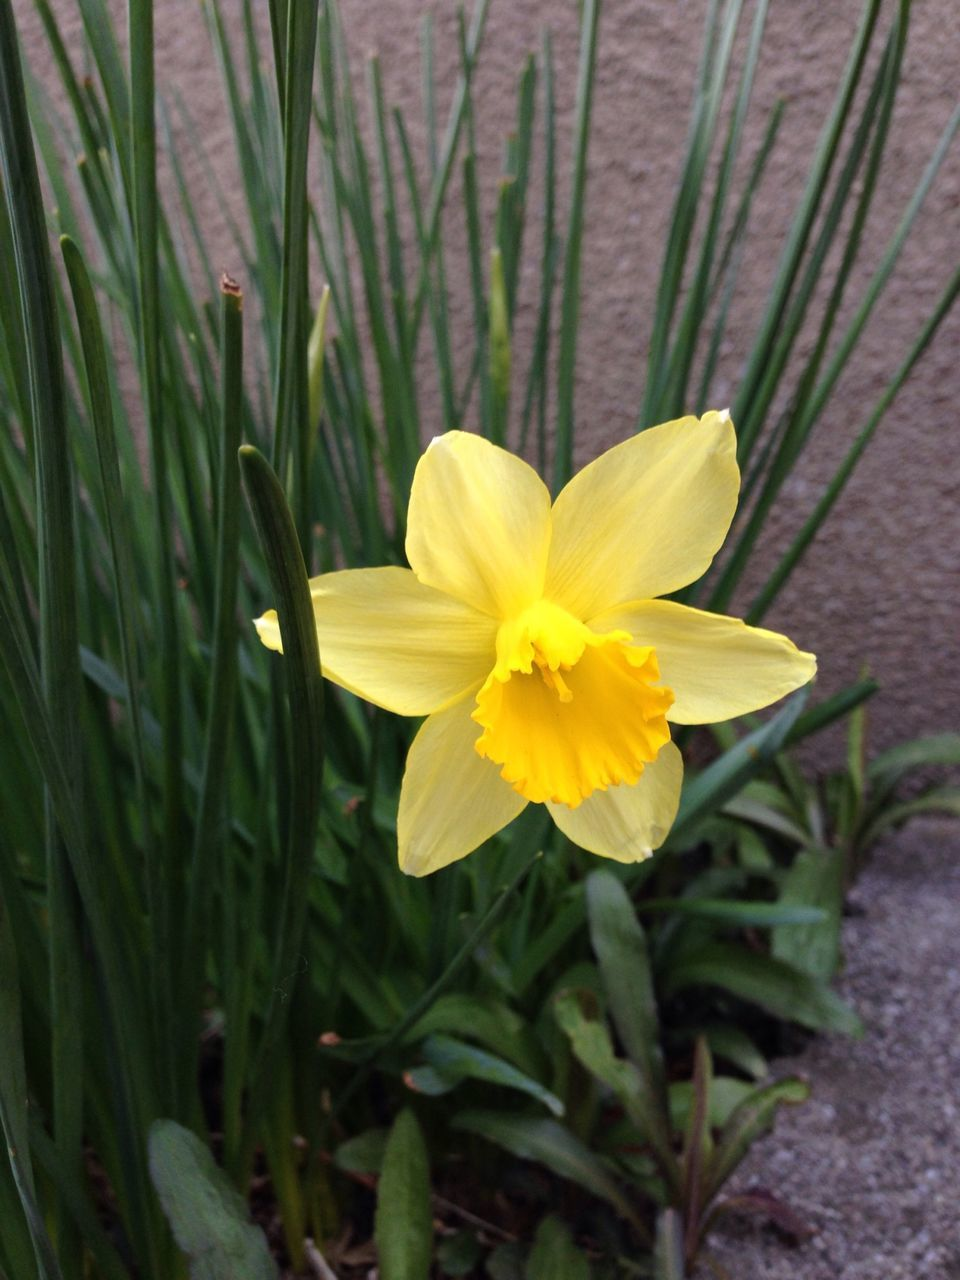 flower, yellow, petal, nature, beauty in nature, fragility, flower head, growth, freshness, plant, outdoors, day, close-up, green color, no people, blooming, grass, leaf, crocus